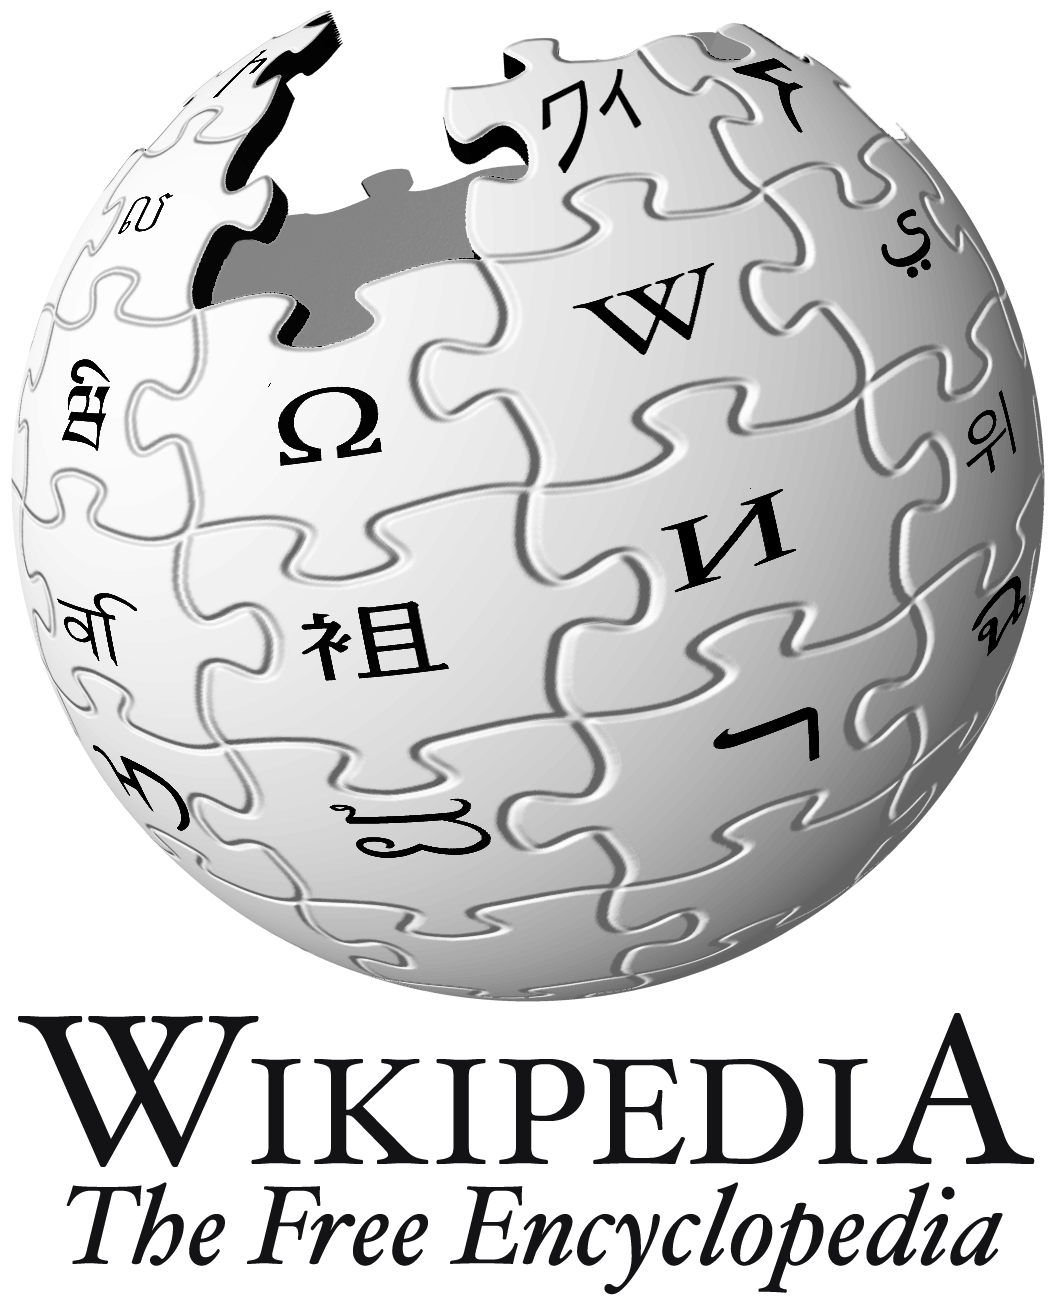 Ken Herar: From The Pages Of Wikipedia, The Free Encyclopedia